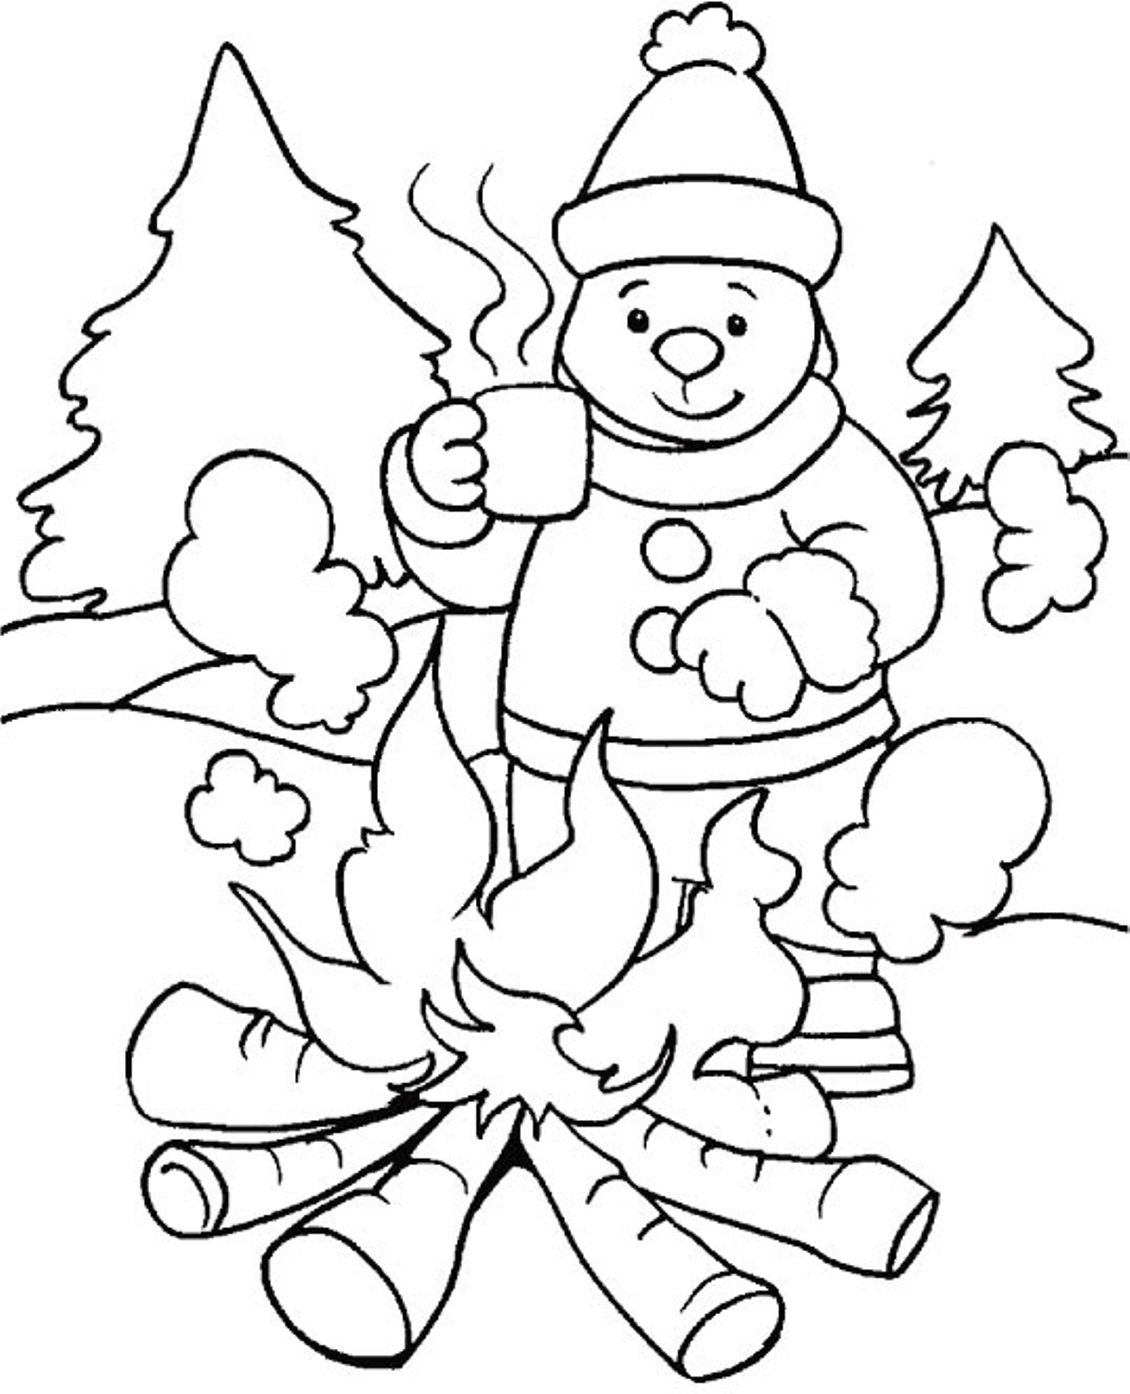 Printable Winter Coloring Pages Coloring Me Free Winter Coloring Pages